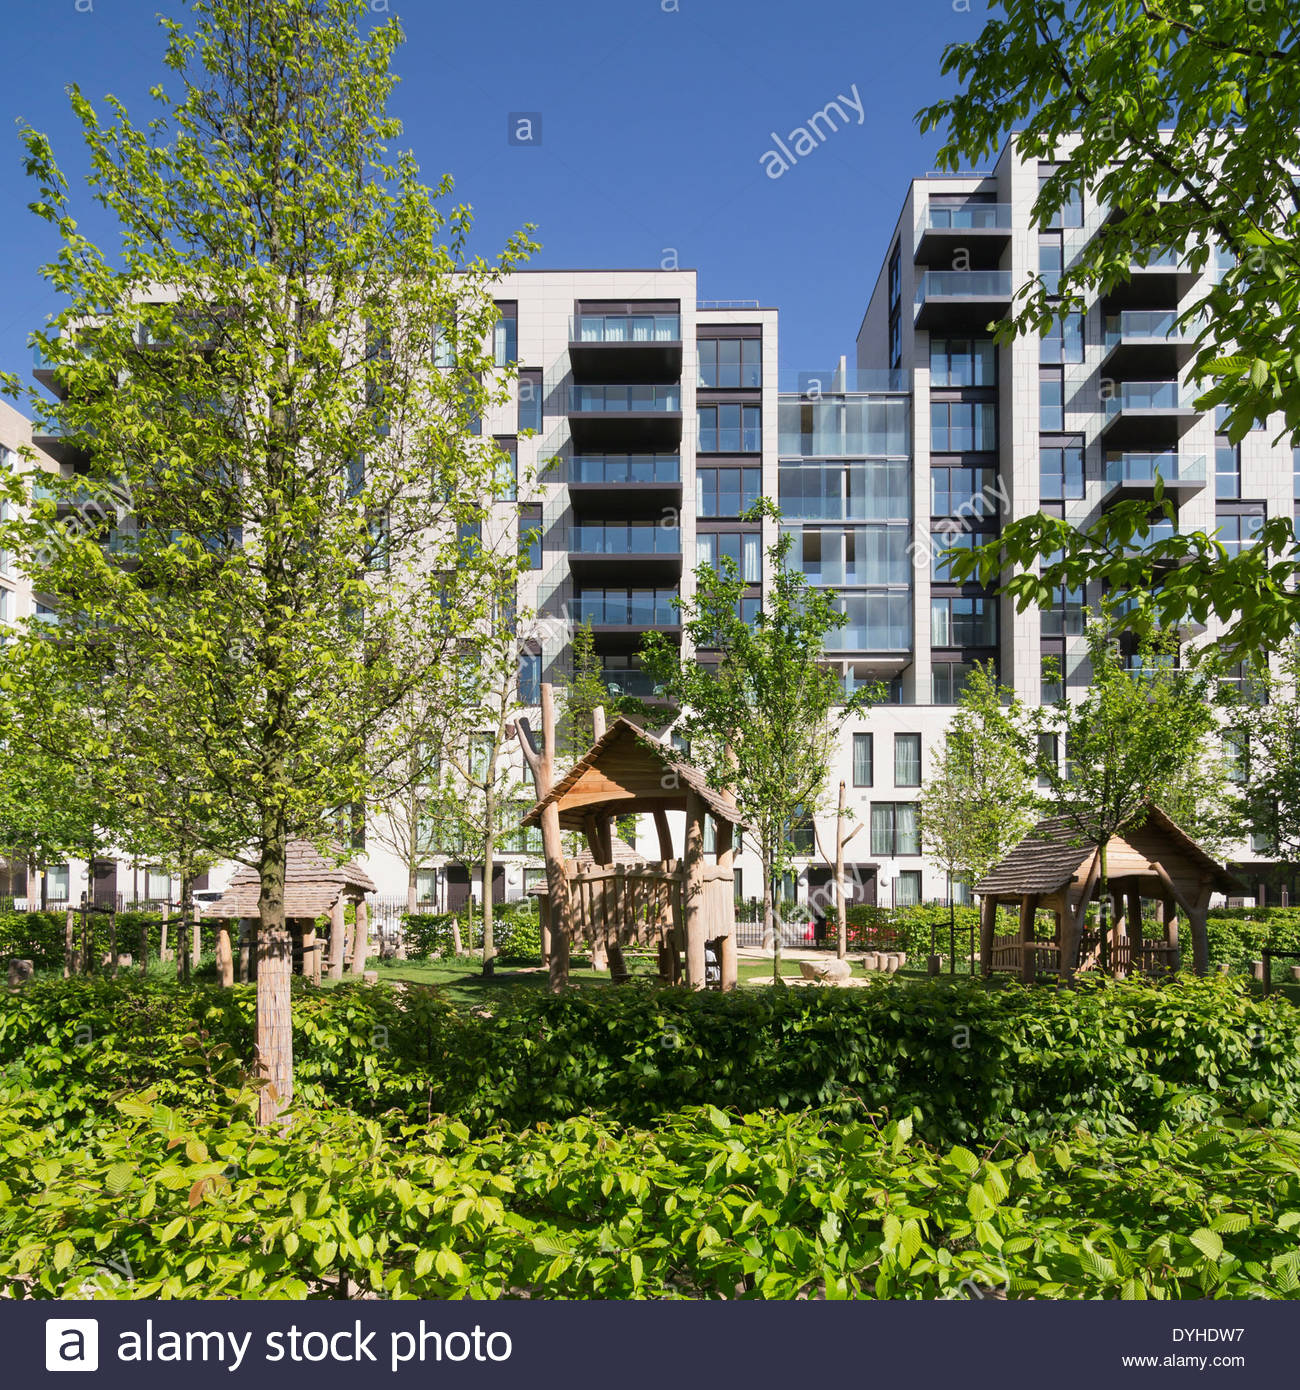 Olympic Village Apartments: East Village Has New Homes And Apartments On The Former